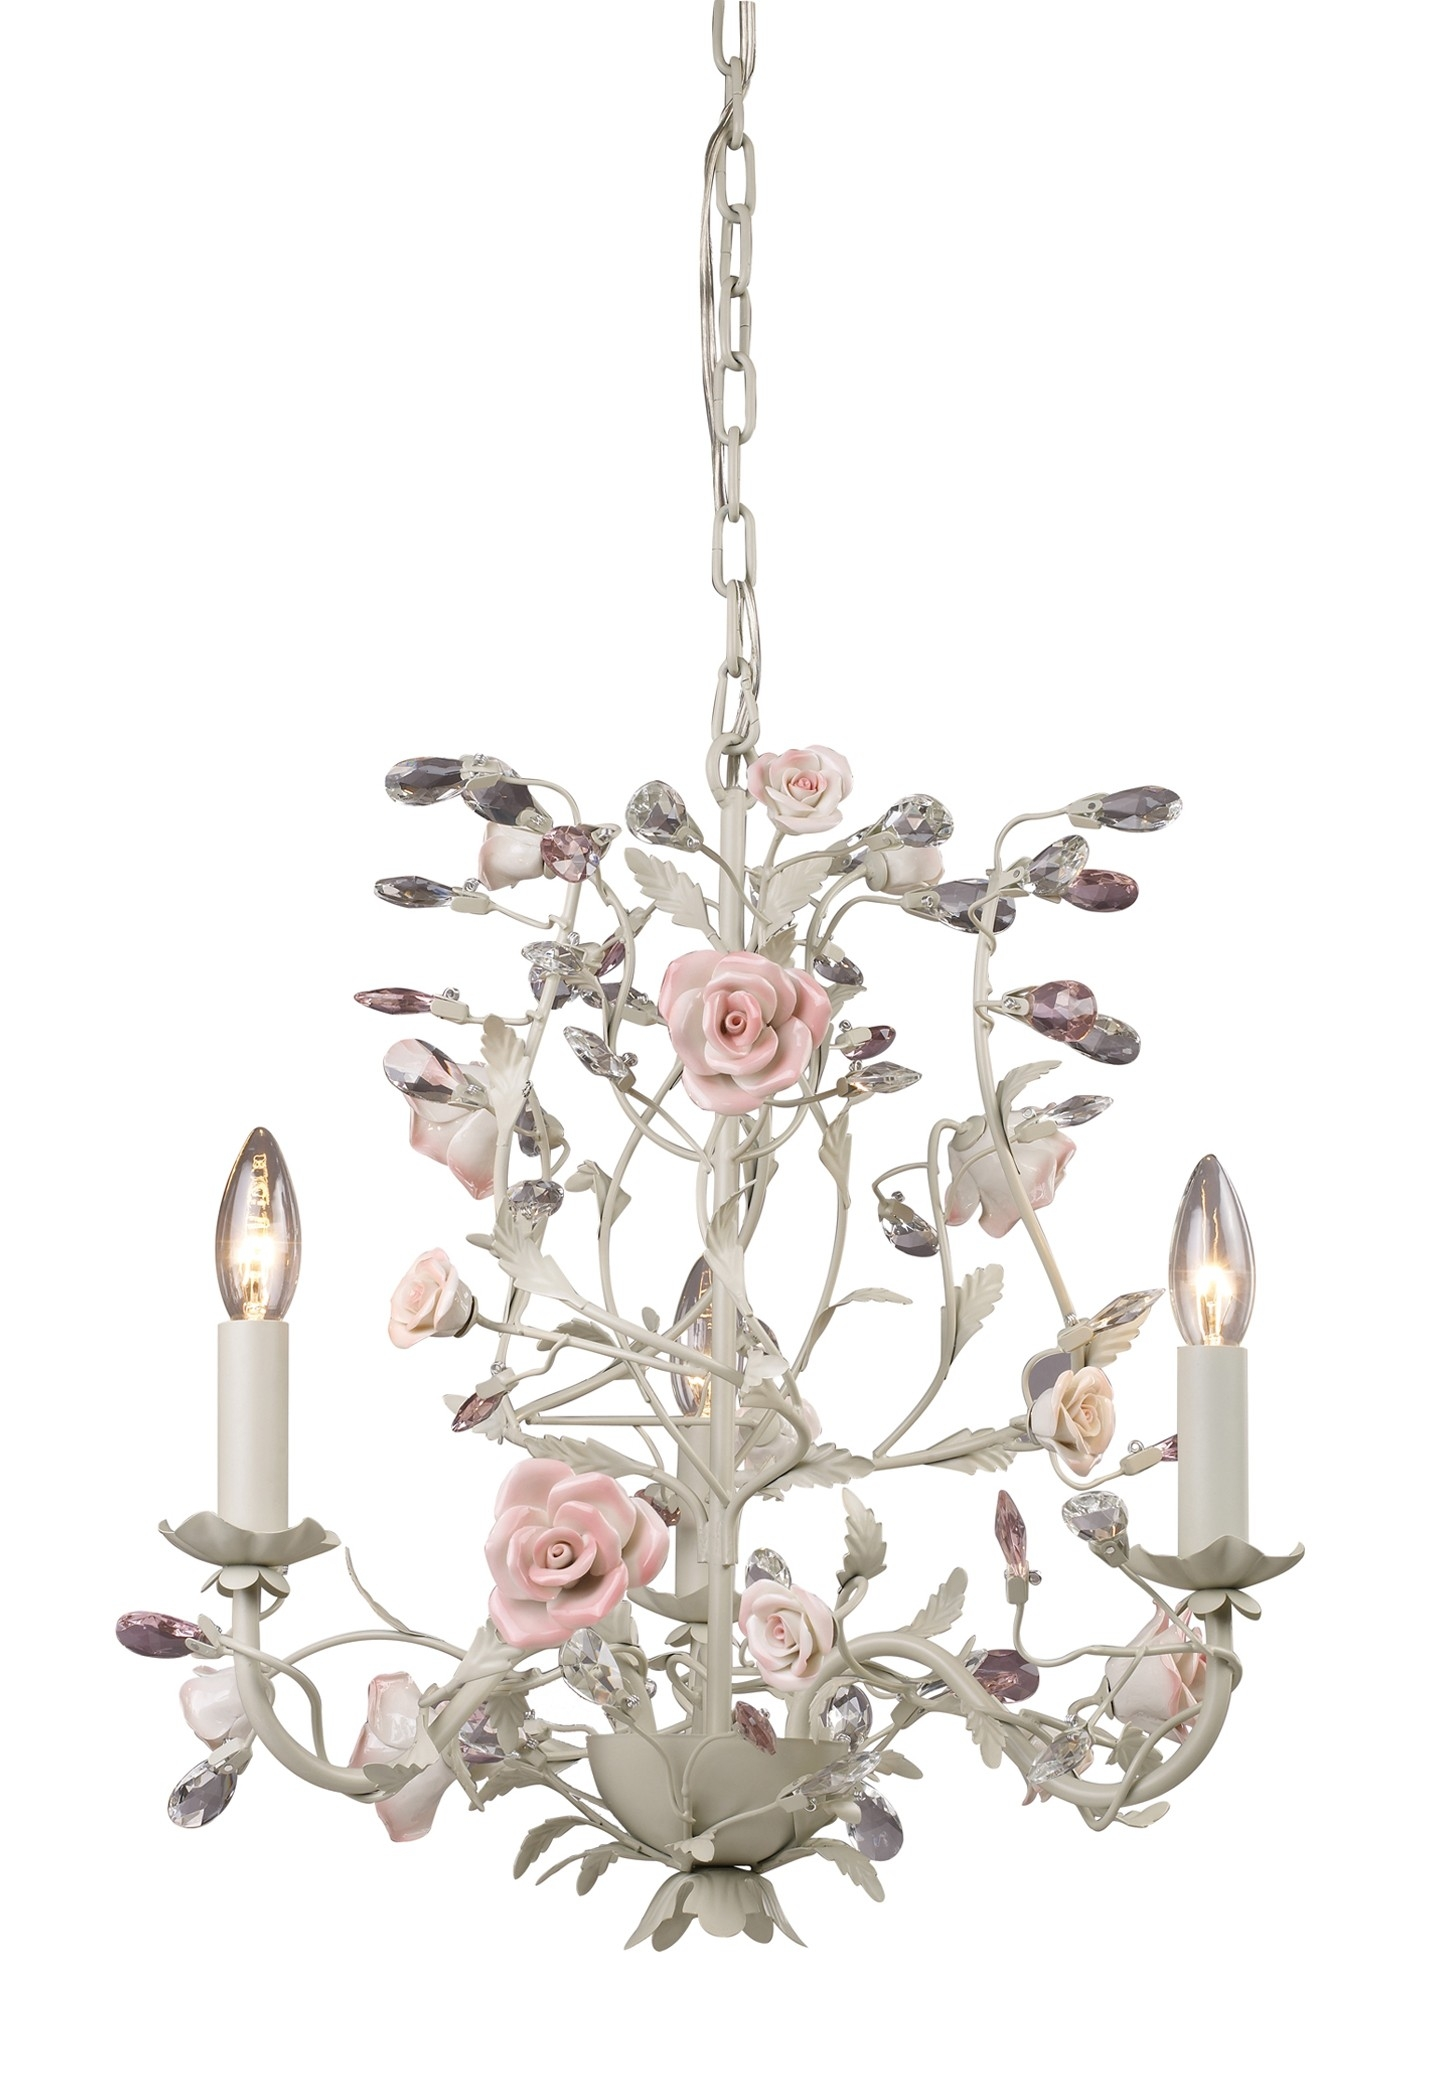 Popular Photo of Small Shabby Chic Chandelier